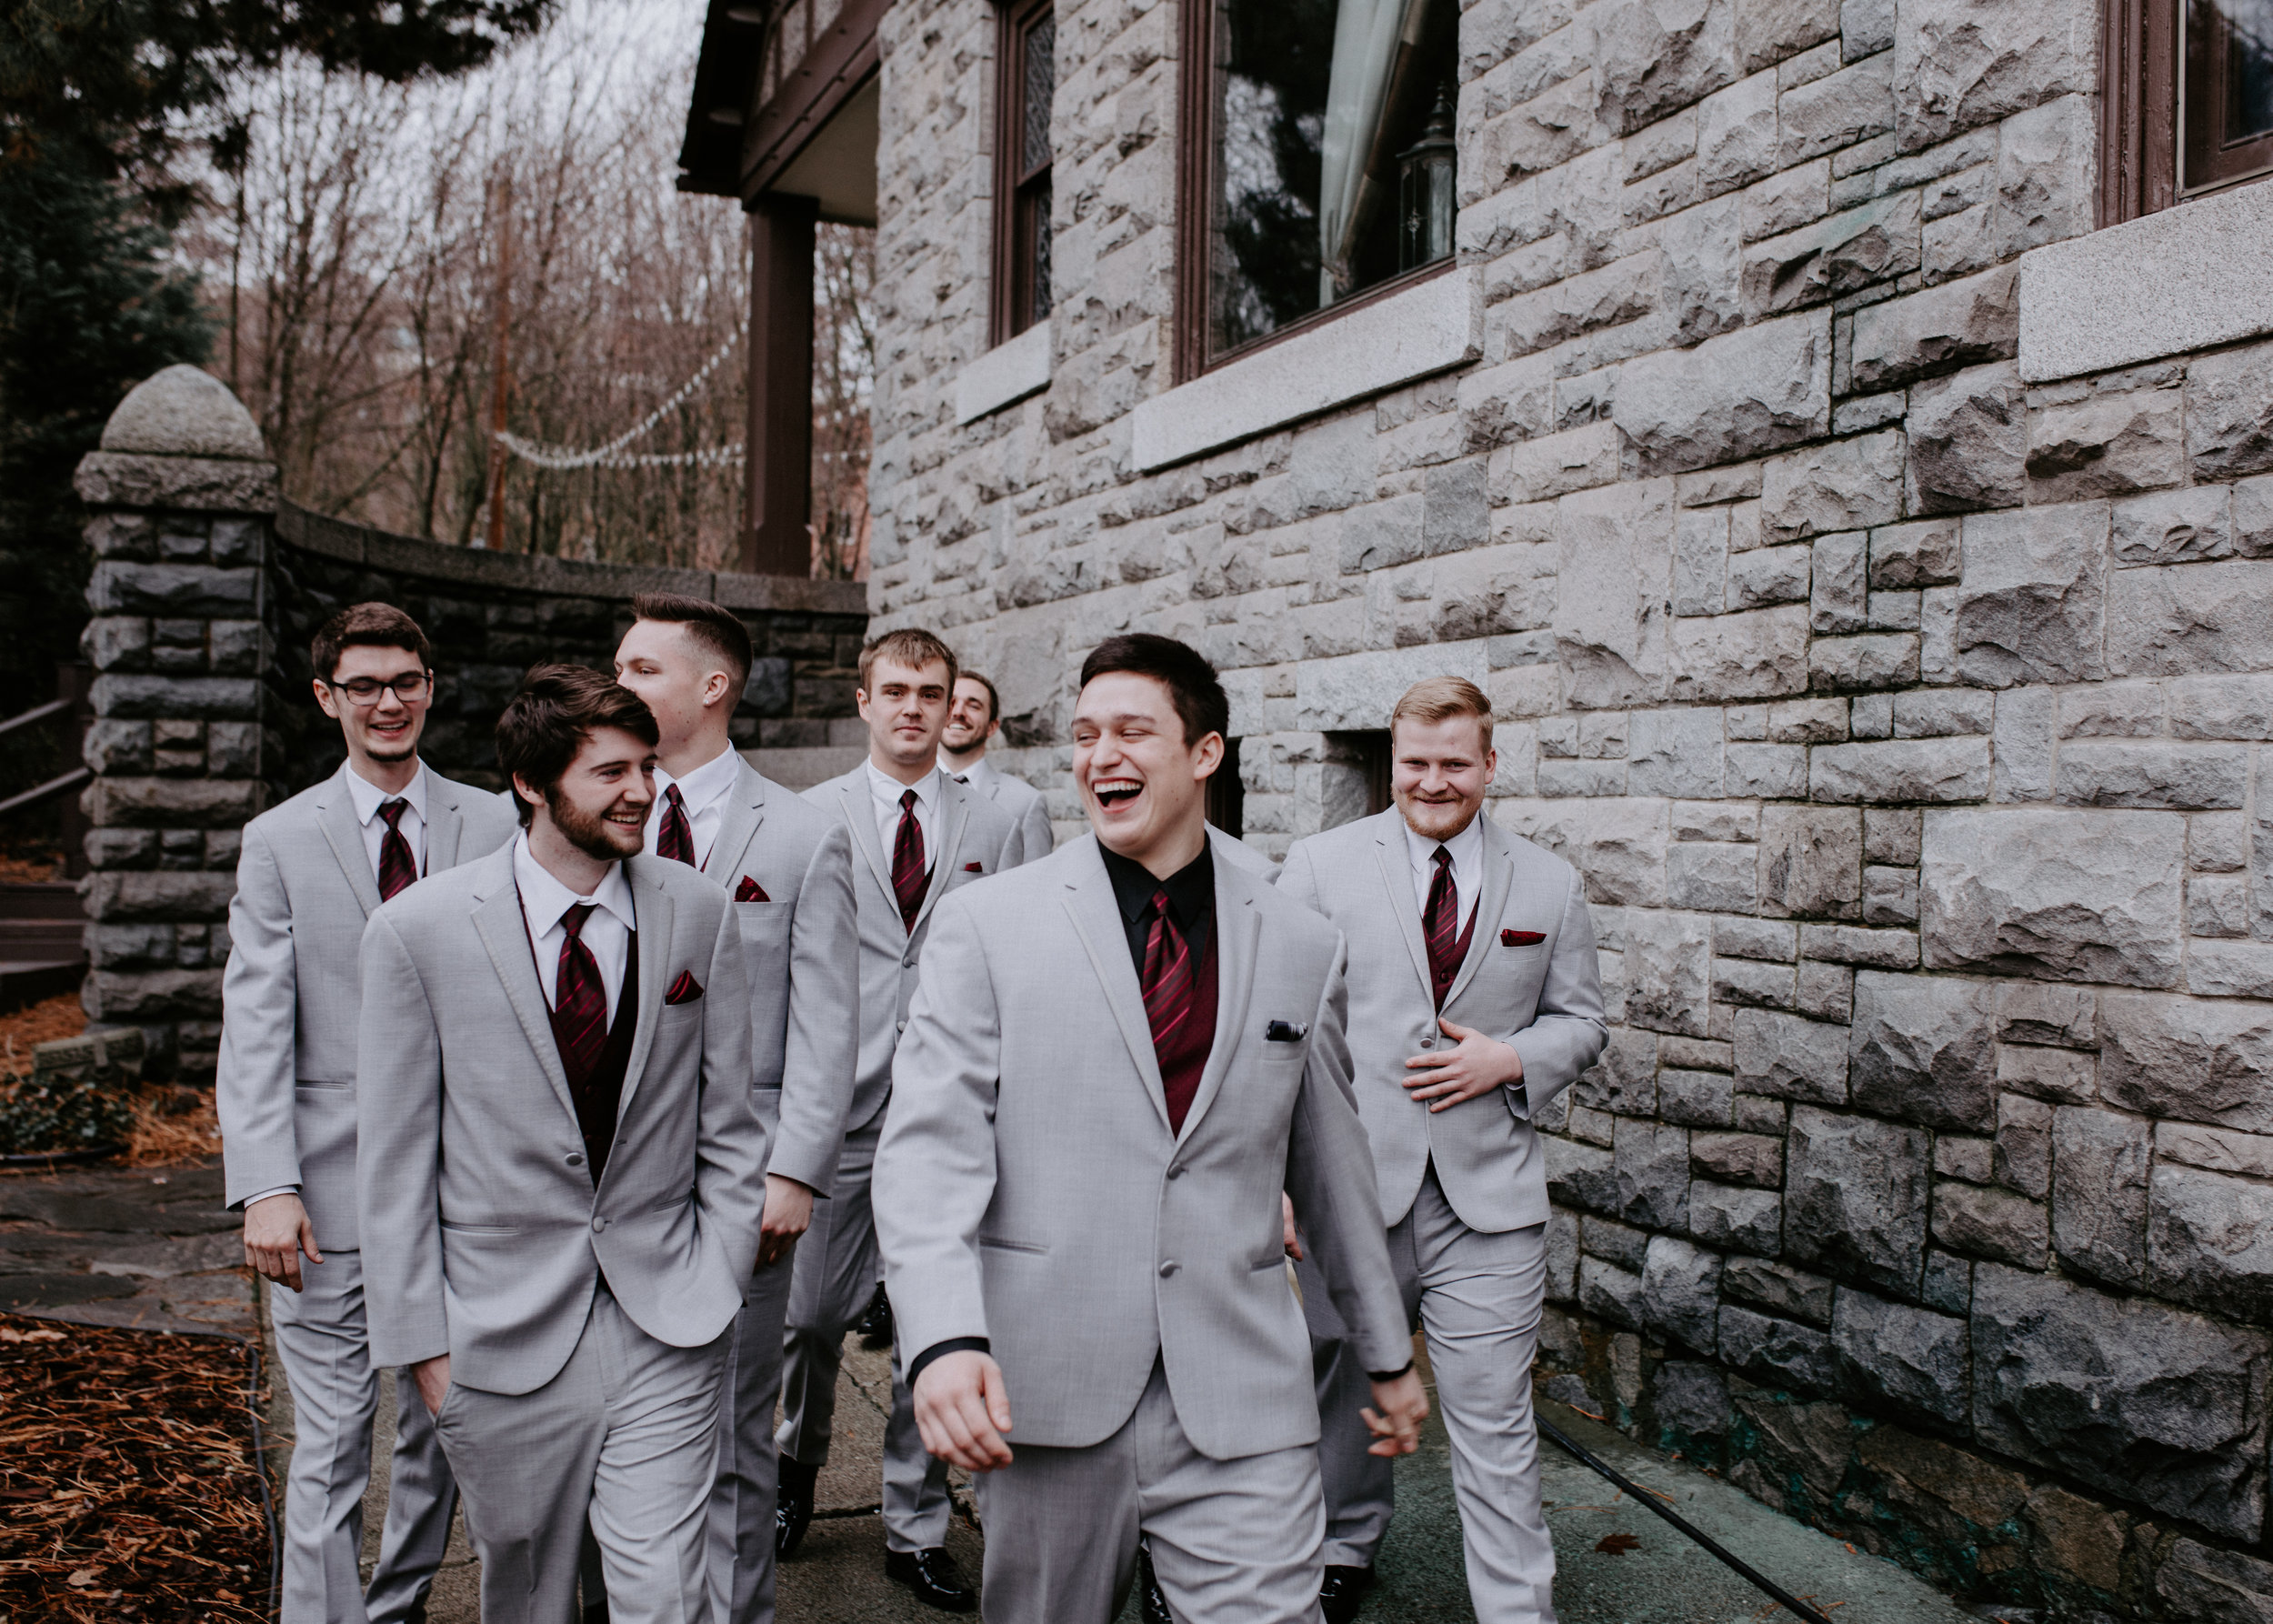 groomsmen walking spokane wedding bride